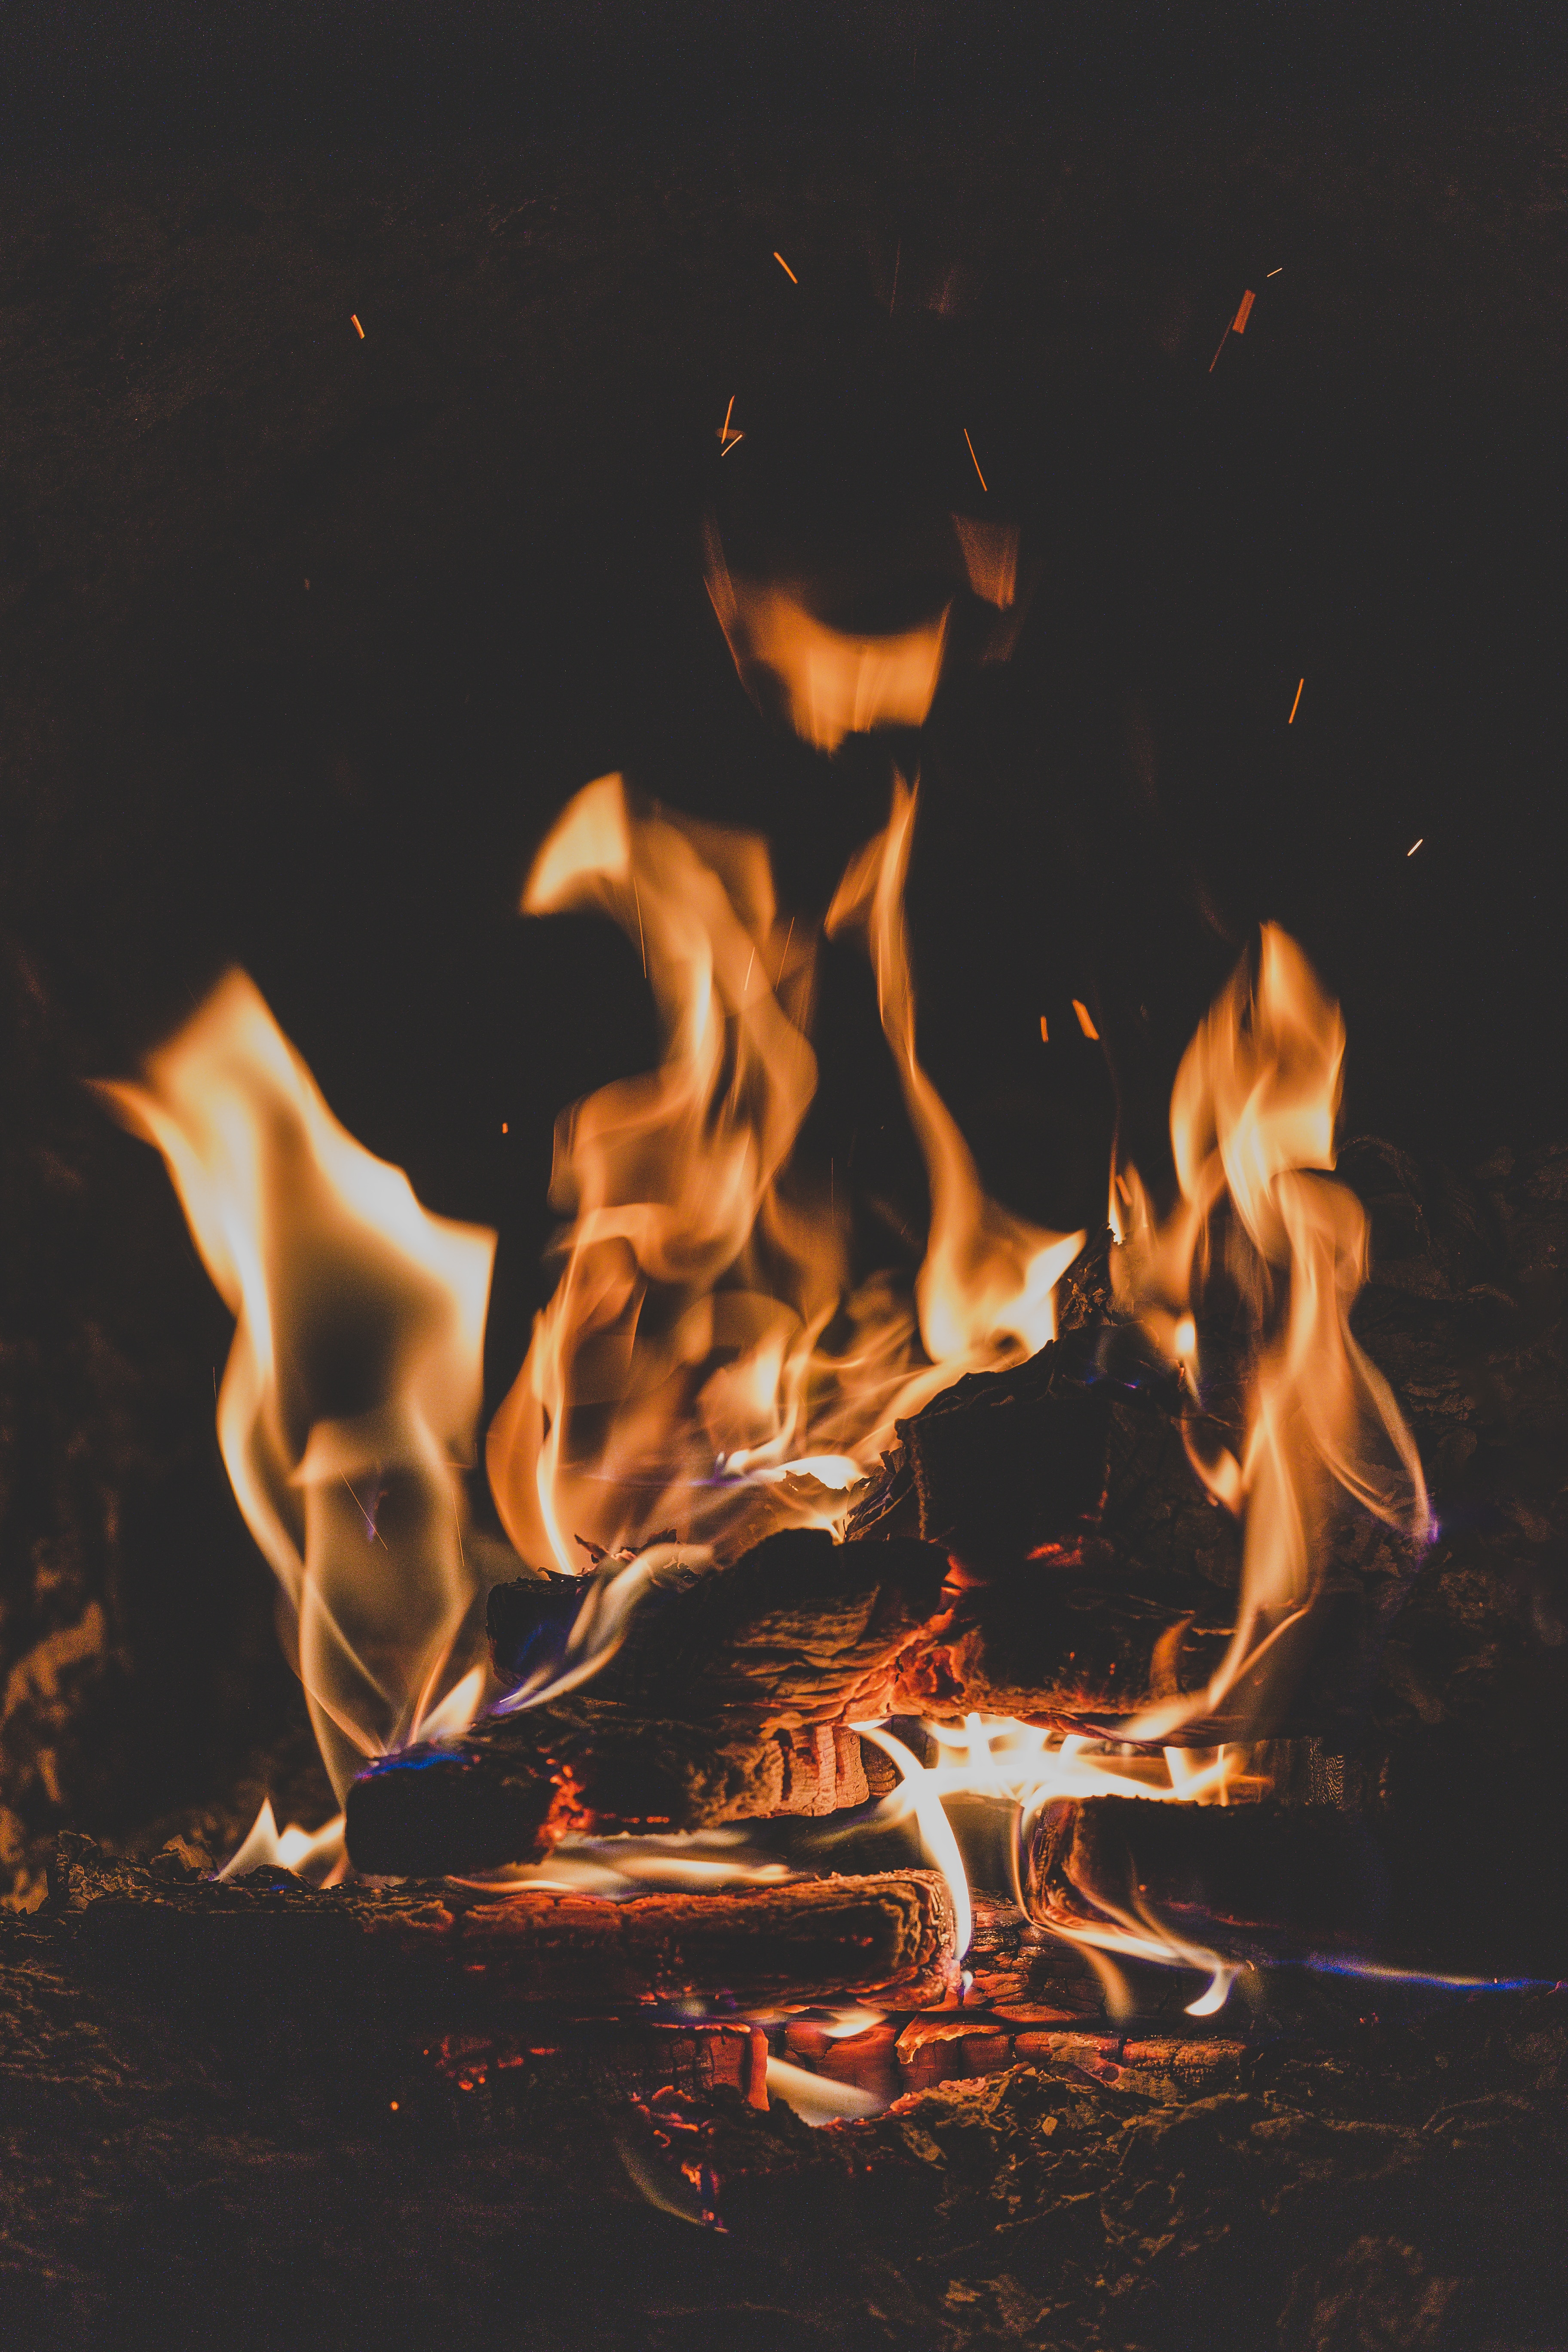 75239 Screensavers and Wallpapers Bonfire for phone. Download Fire, Bonfire, Dark, Flame, Firewood, Camping, Campsite, Angle, Corner, Ash pictures for free